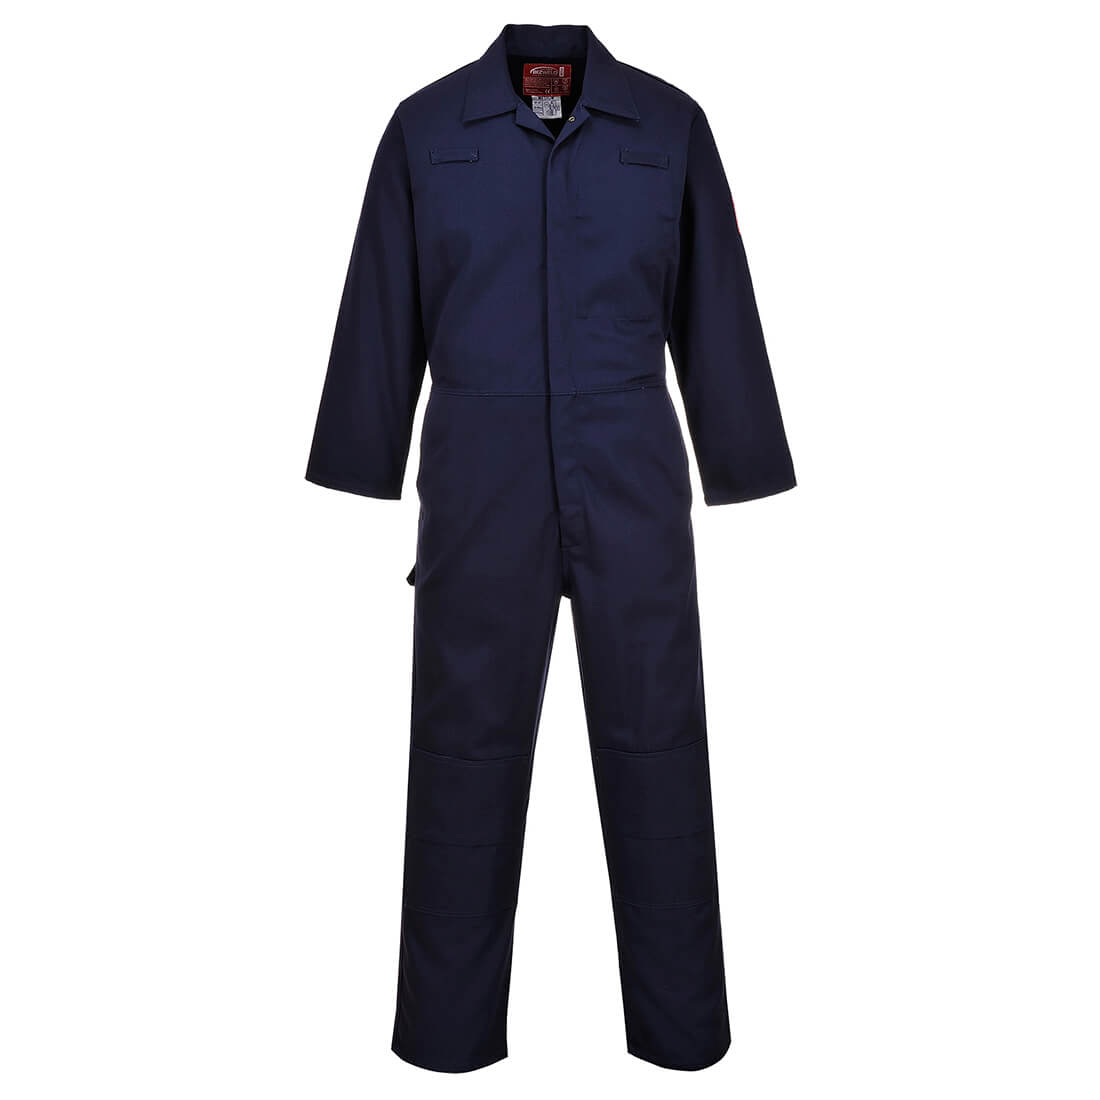 Image of Biz Weld Flame Resistant Mole Skin Coverall Navy 2XL